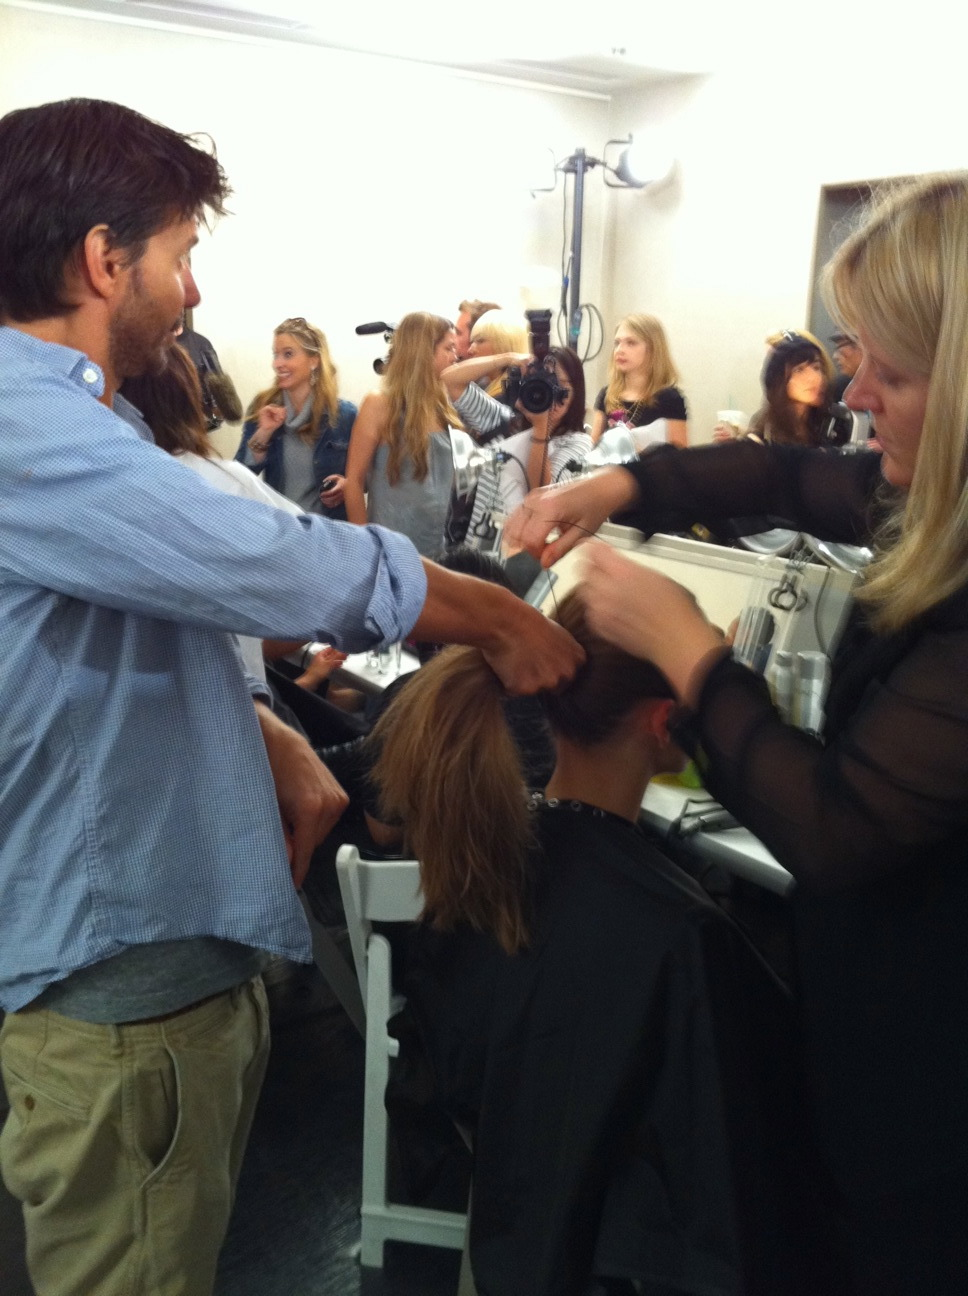 Lead stylist Guido at work